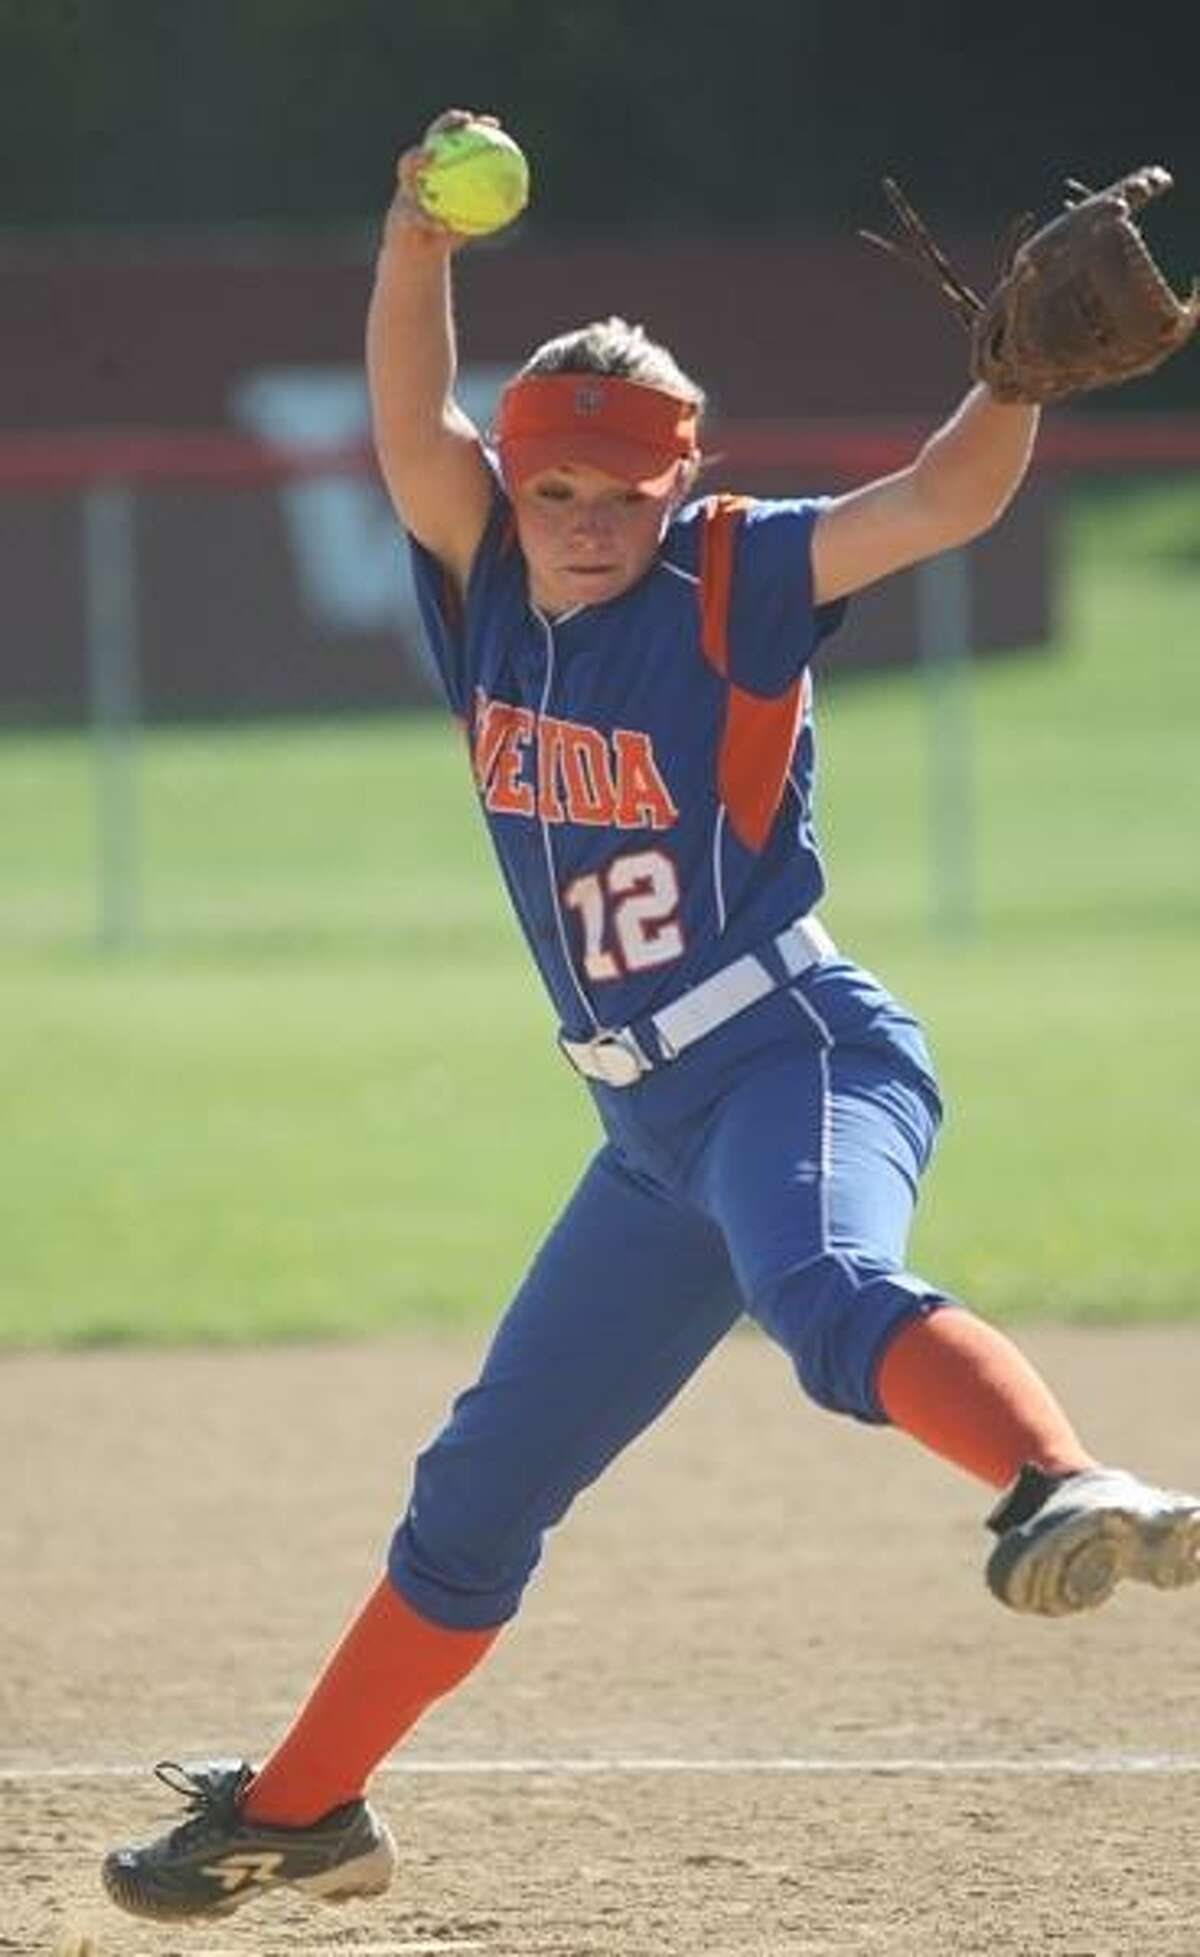 PHOTO BY JOHN HAEGER @ONEIDAPHOTO ON TWITTER/ONEIDA DAILY DISPATCH Oneida's Ashley Marshall (12) delivers a pitch against VVS on Tuesday, May 7, 2013 in Verona. Oneida is the top-seeded team in the Class A tournament.